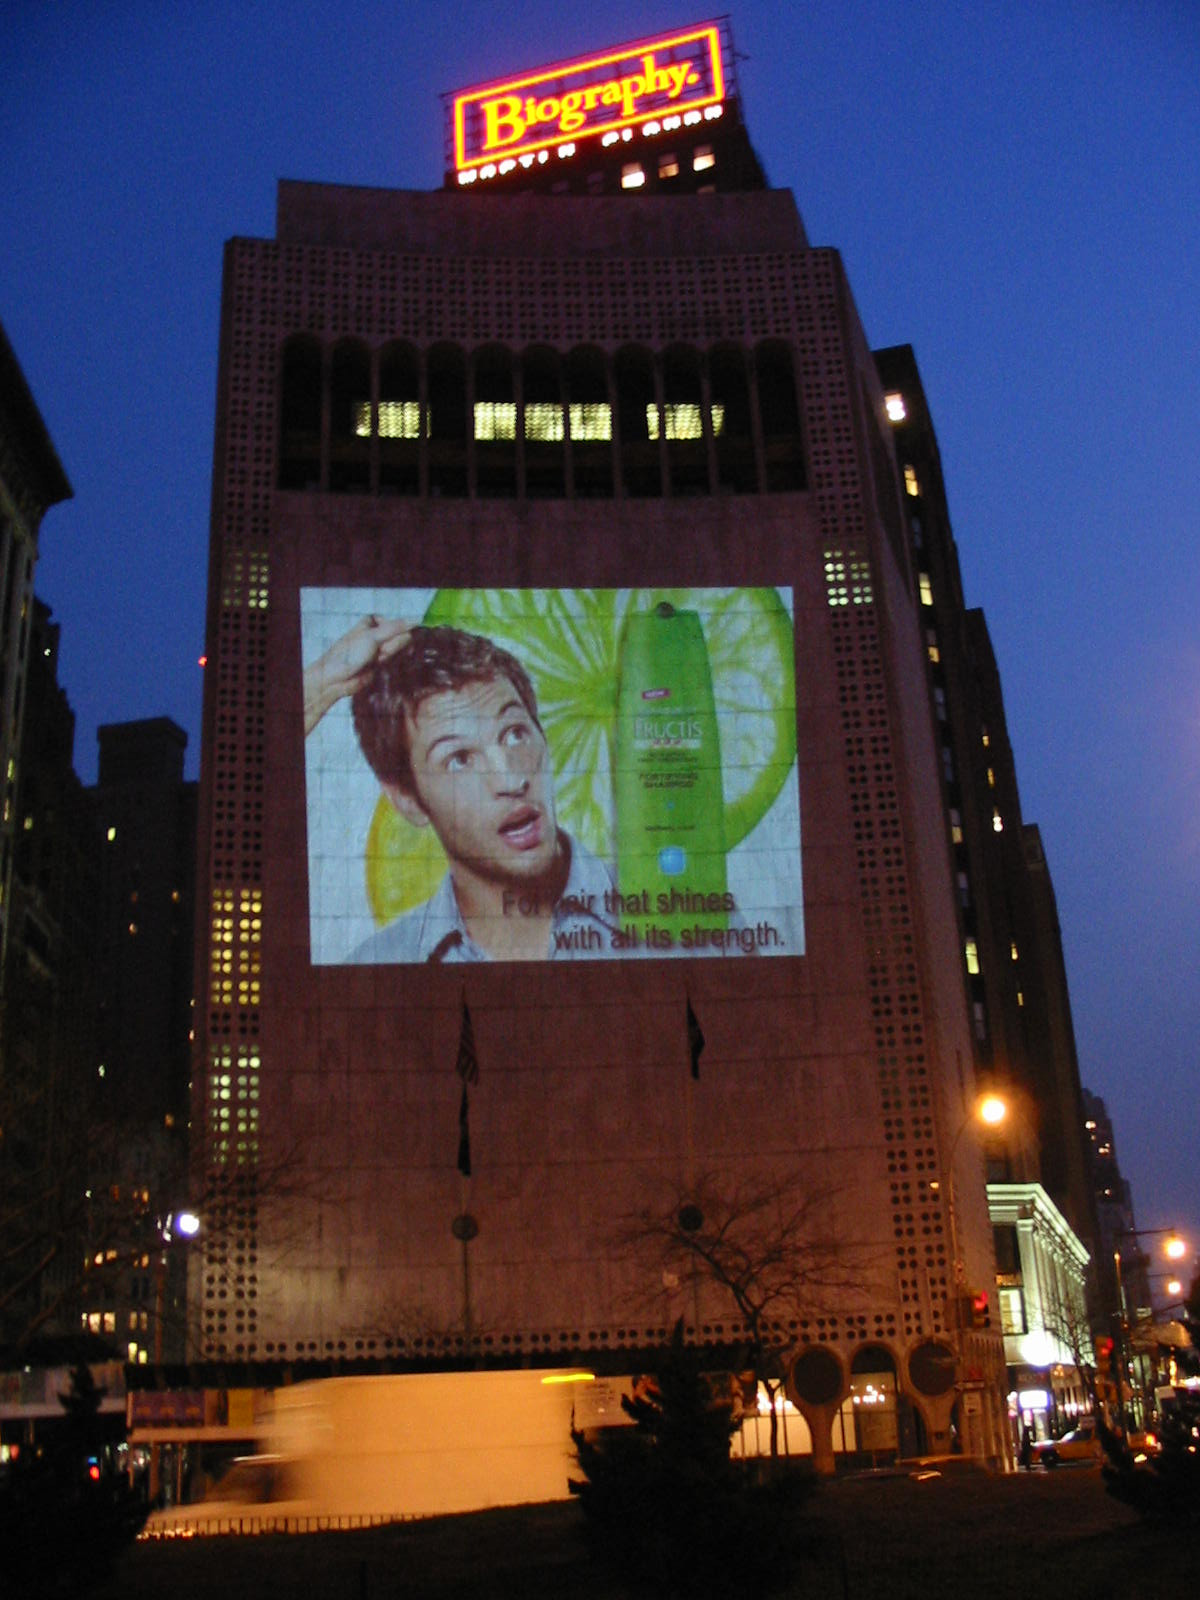 Cool video projection media